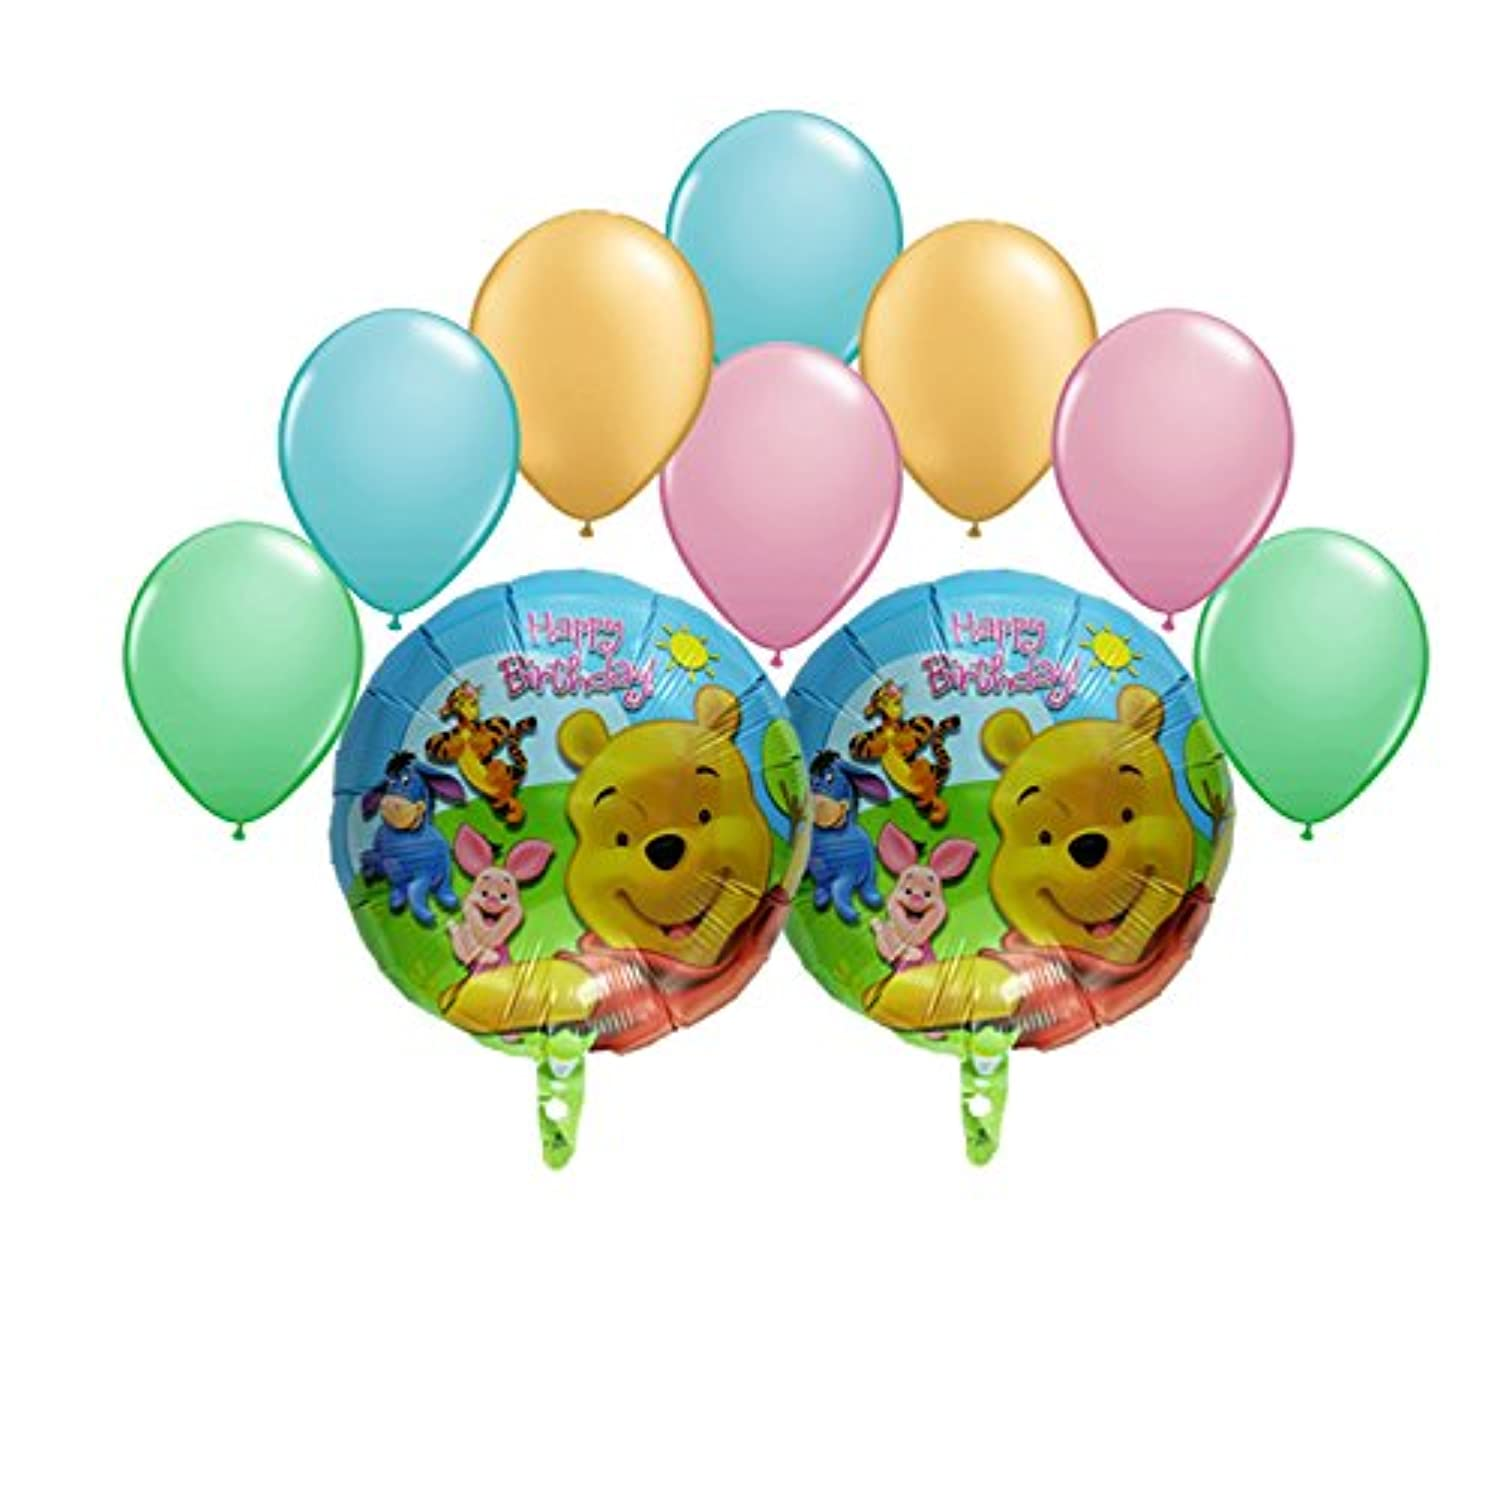 Winnie the Pooh and Friends Happy誕生日バルーンブーケ10 pc